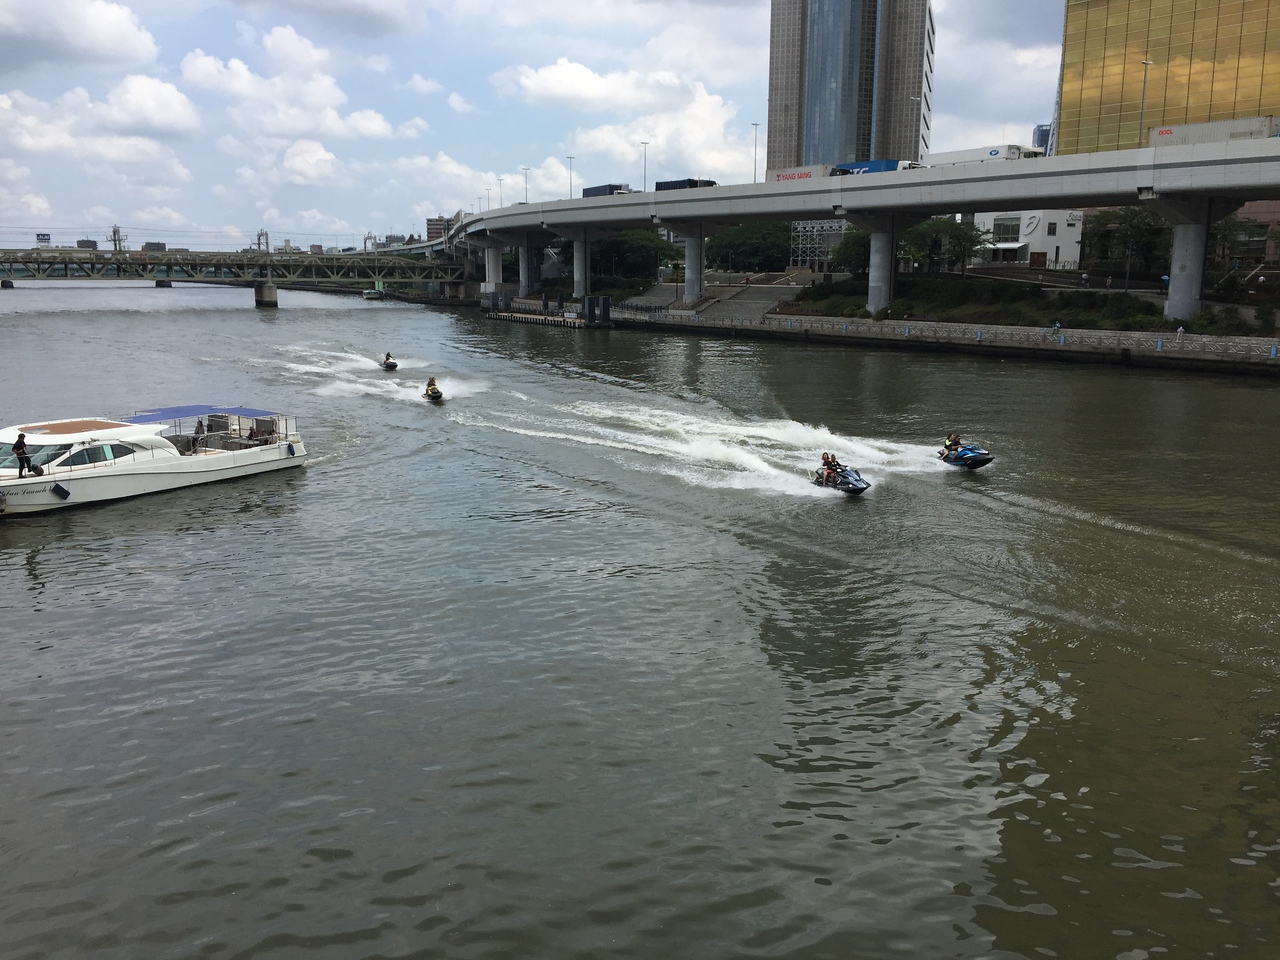 Jet skiers on the Sumida River